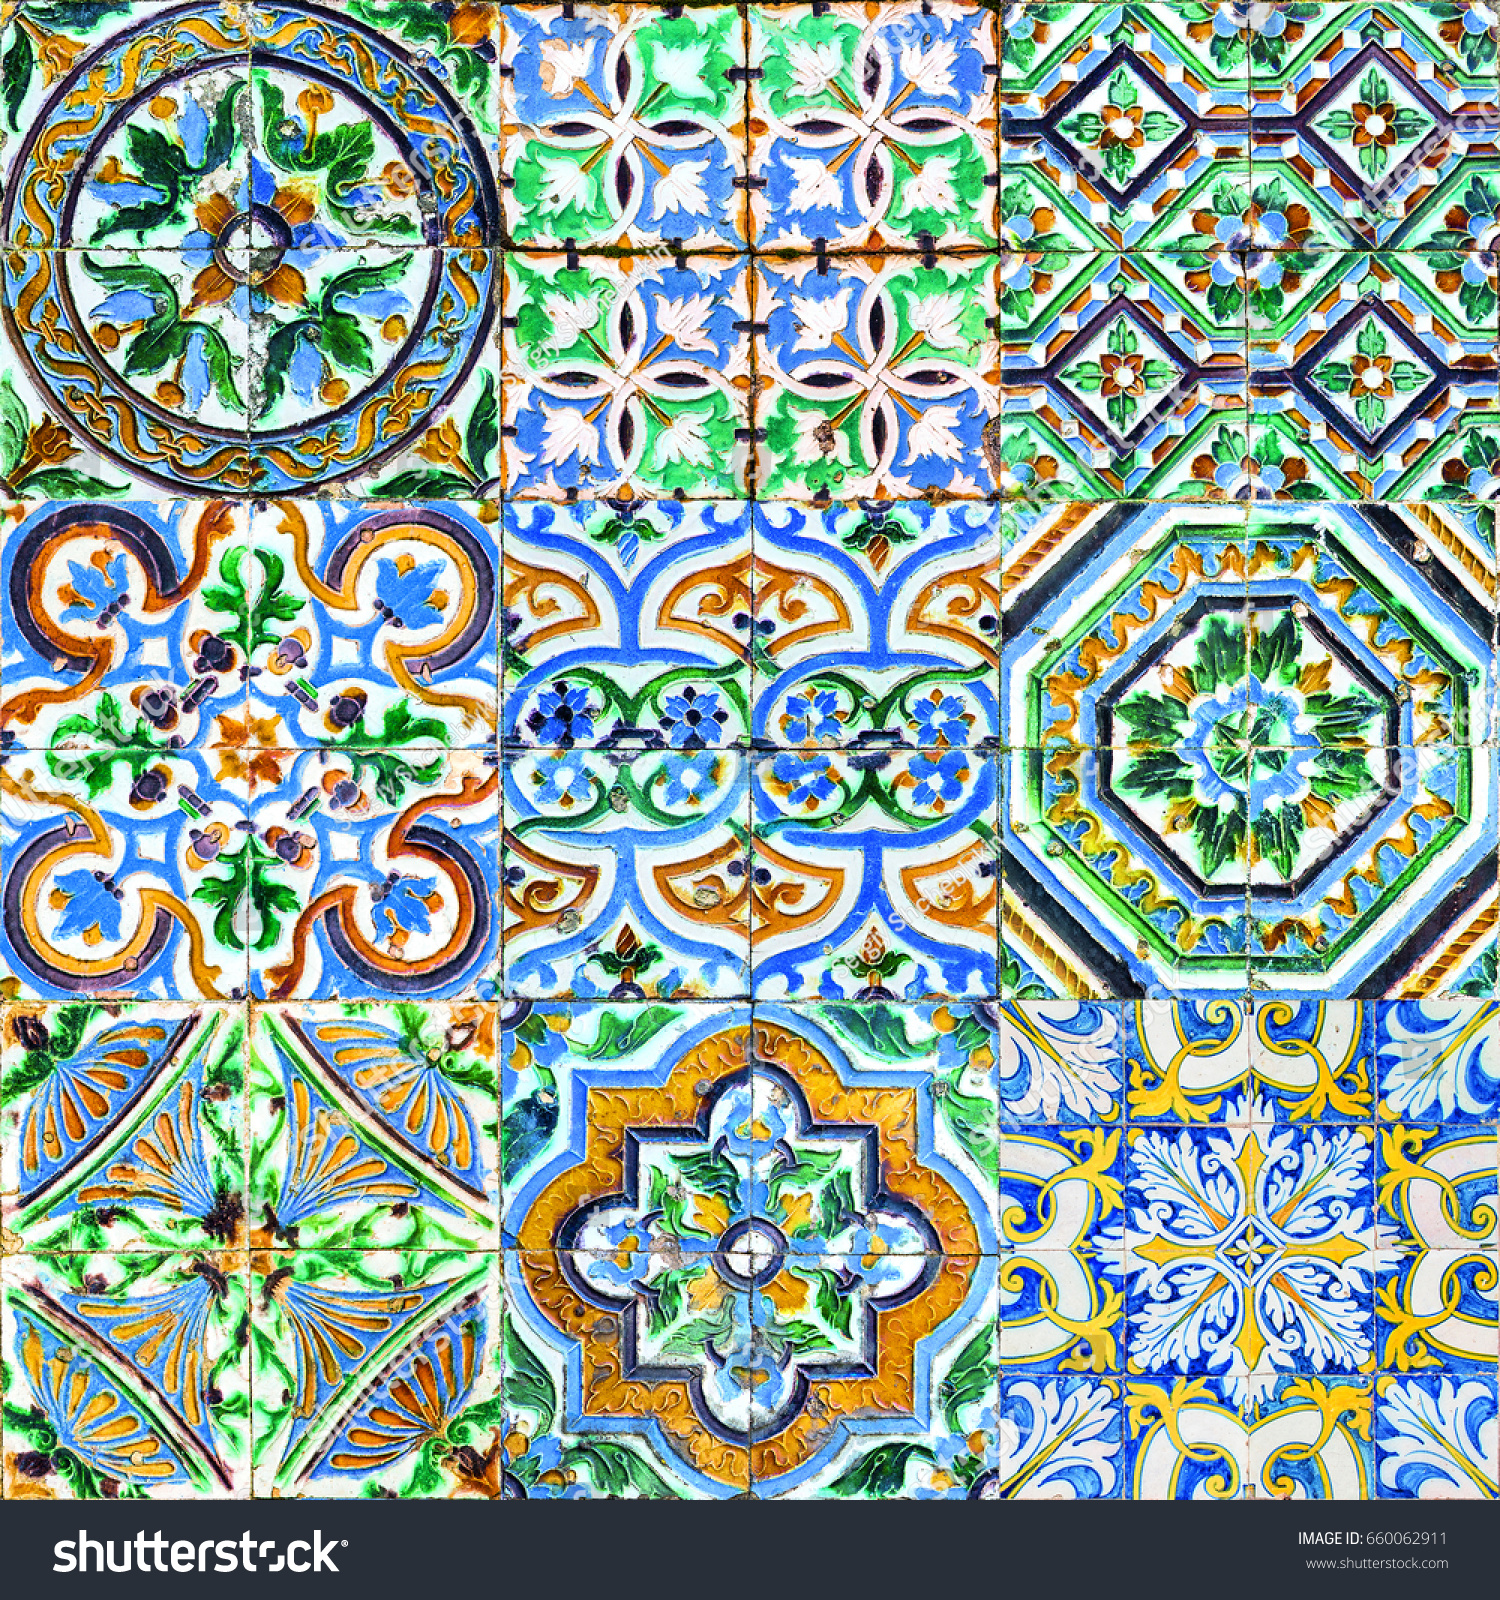 Andalusian Tile Patterns Spain Stock Photo (Royalty Free) 660062911 ...